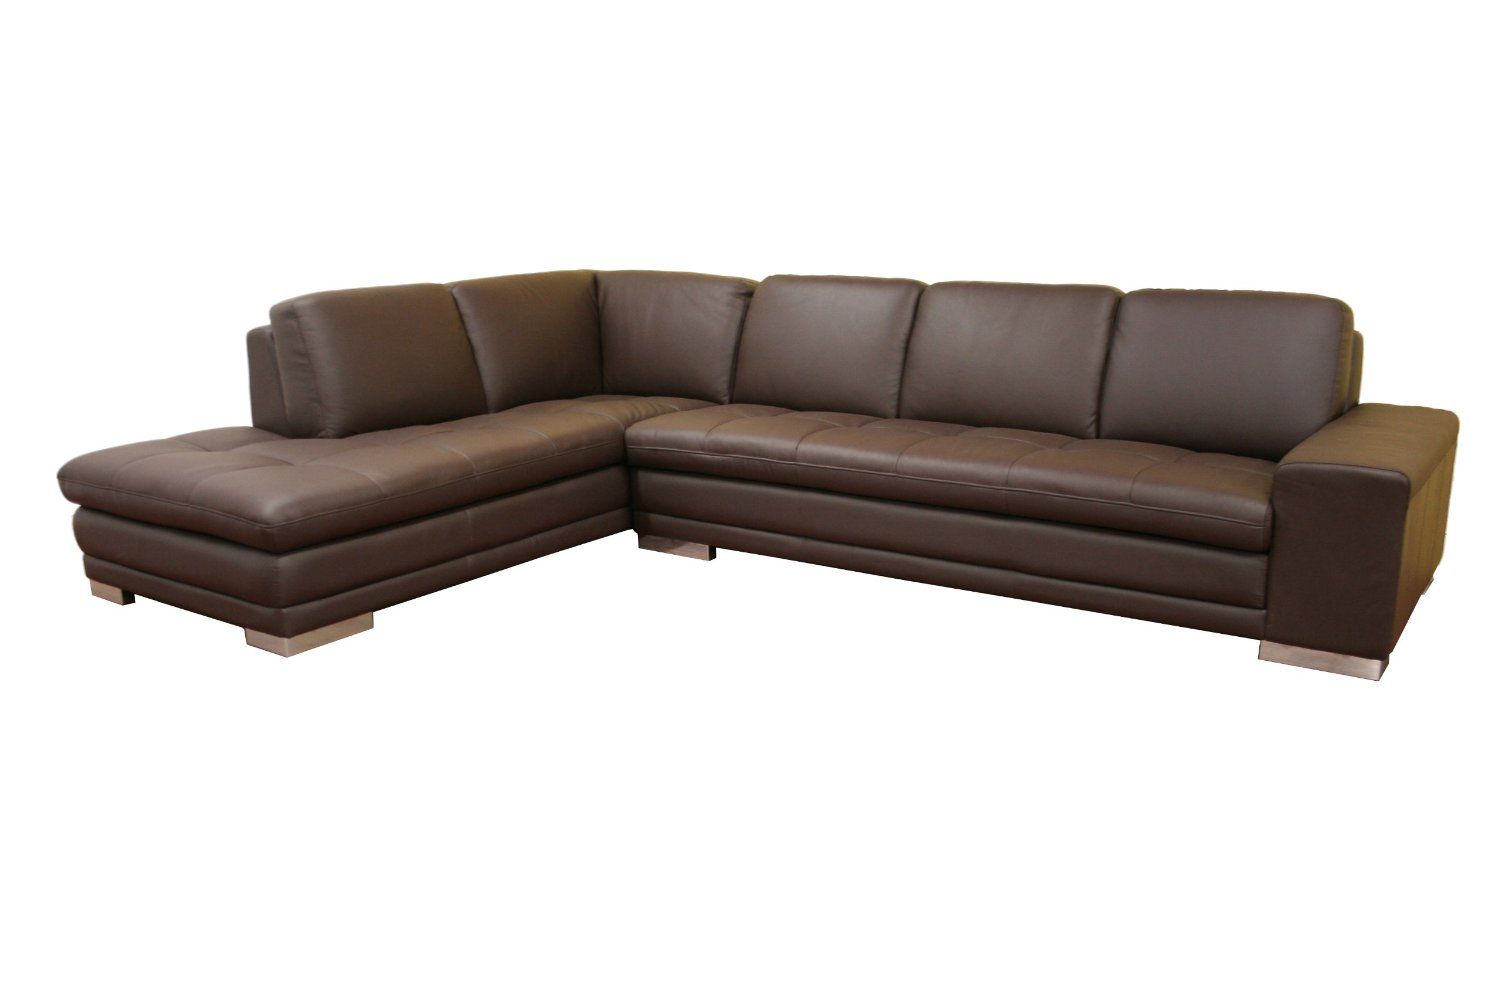 leather sofa couch slipcovers australia sectional furniture guide org